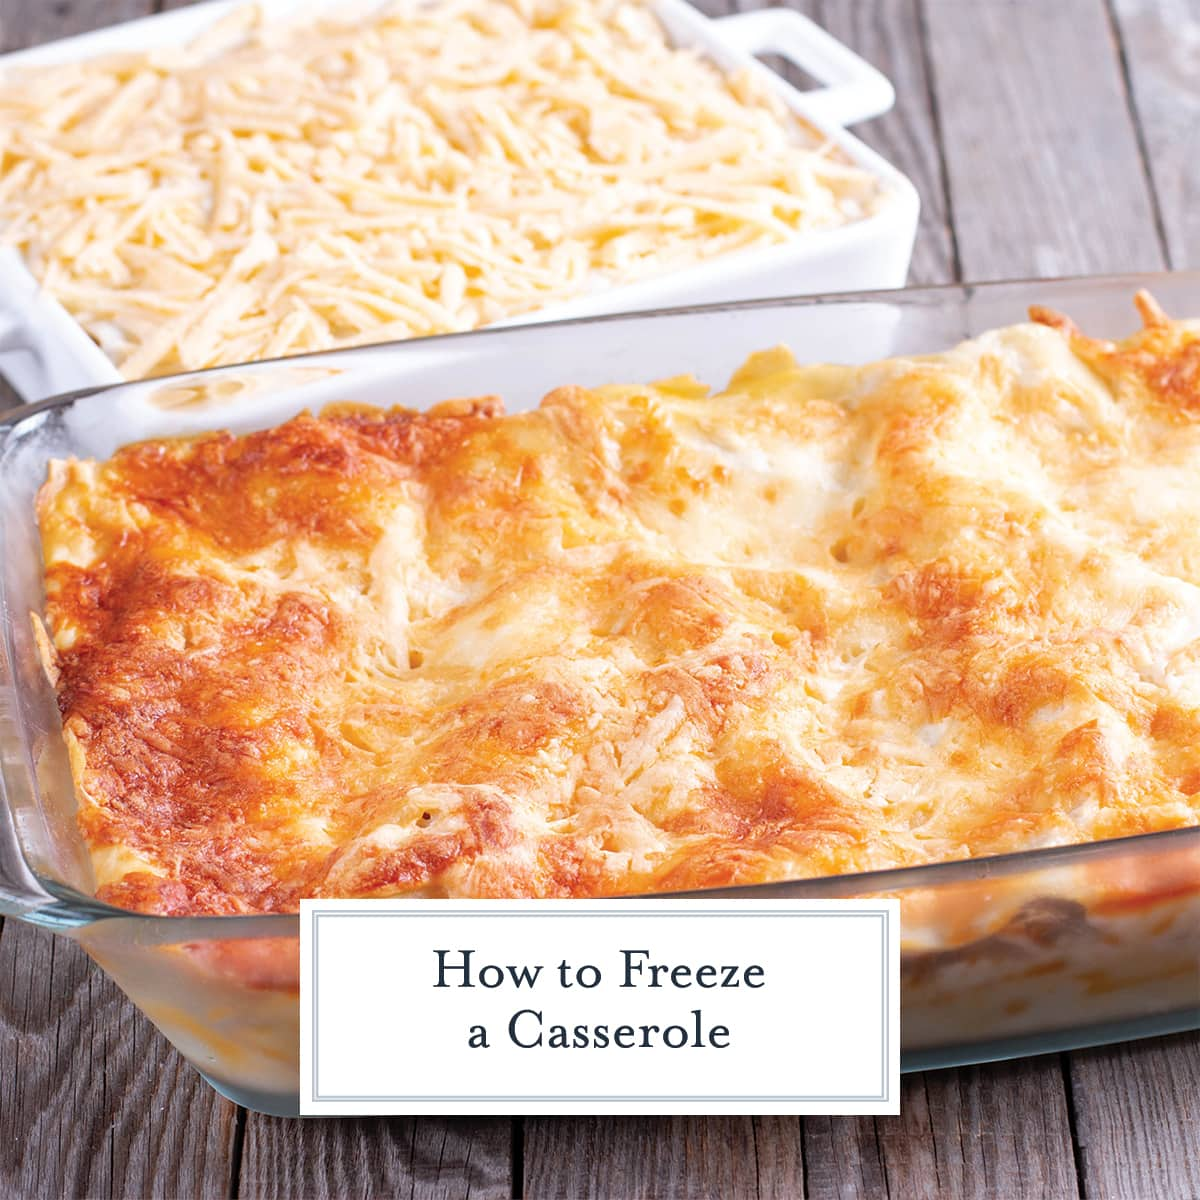 two cheese topped casseroles- one cooked and one uncooked